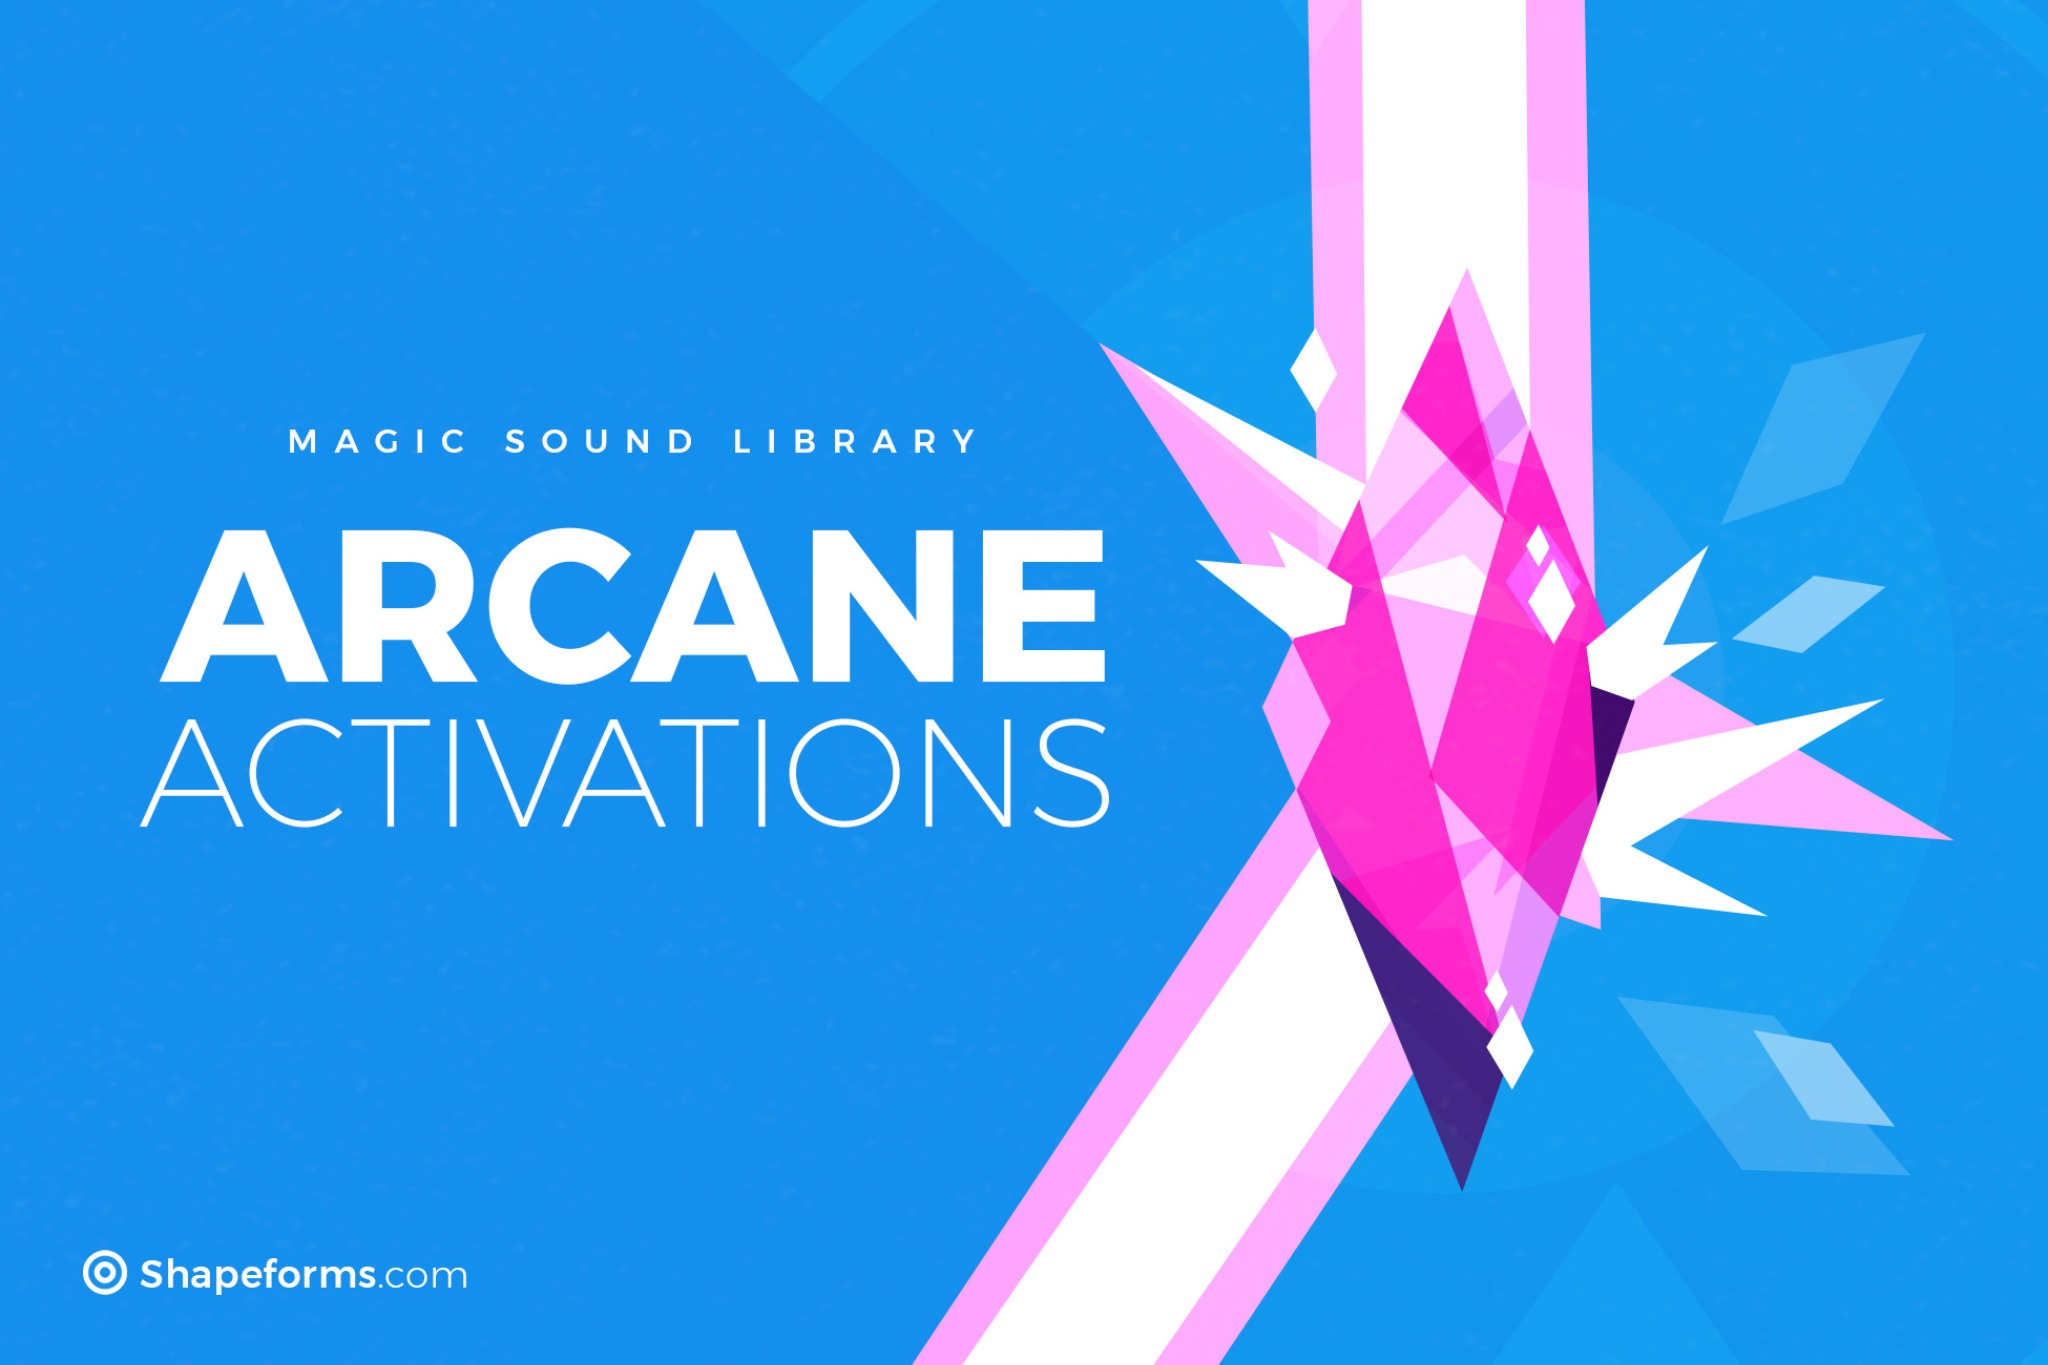 Arcane Activations